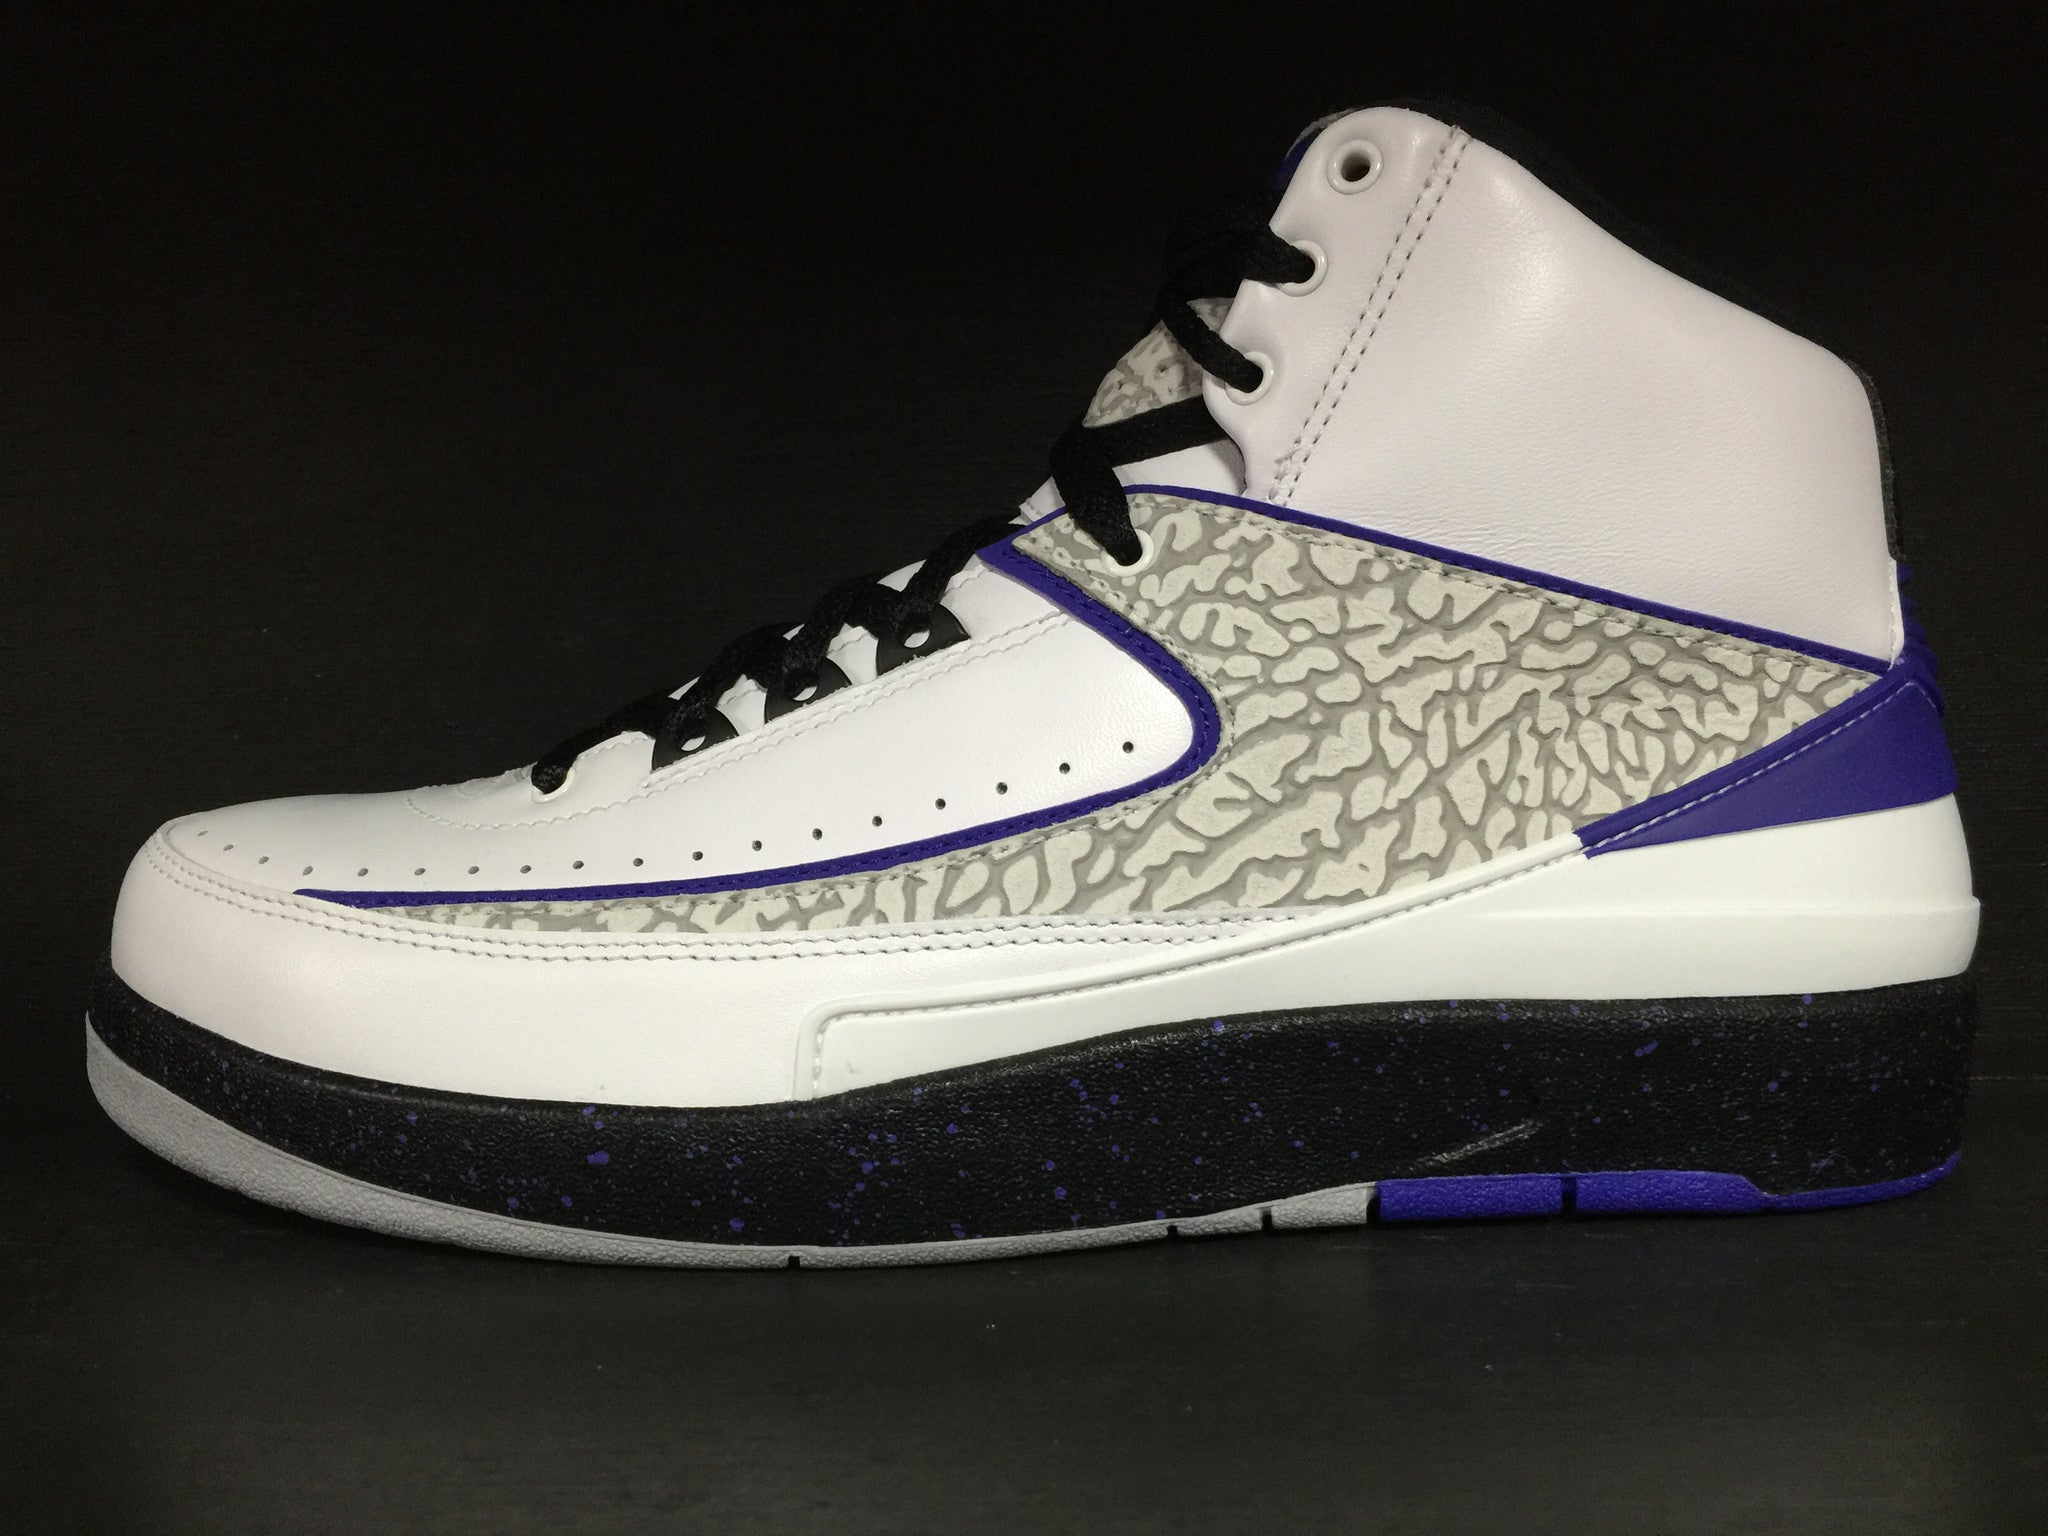 Air Jordan 2 Retro 'Dark Concord'